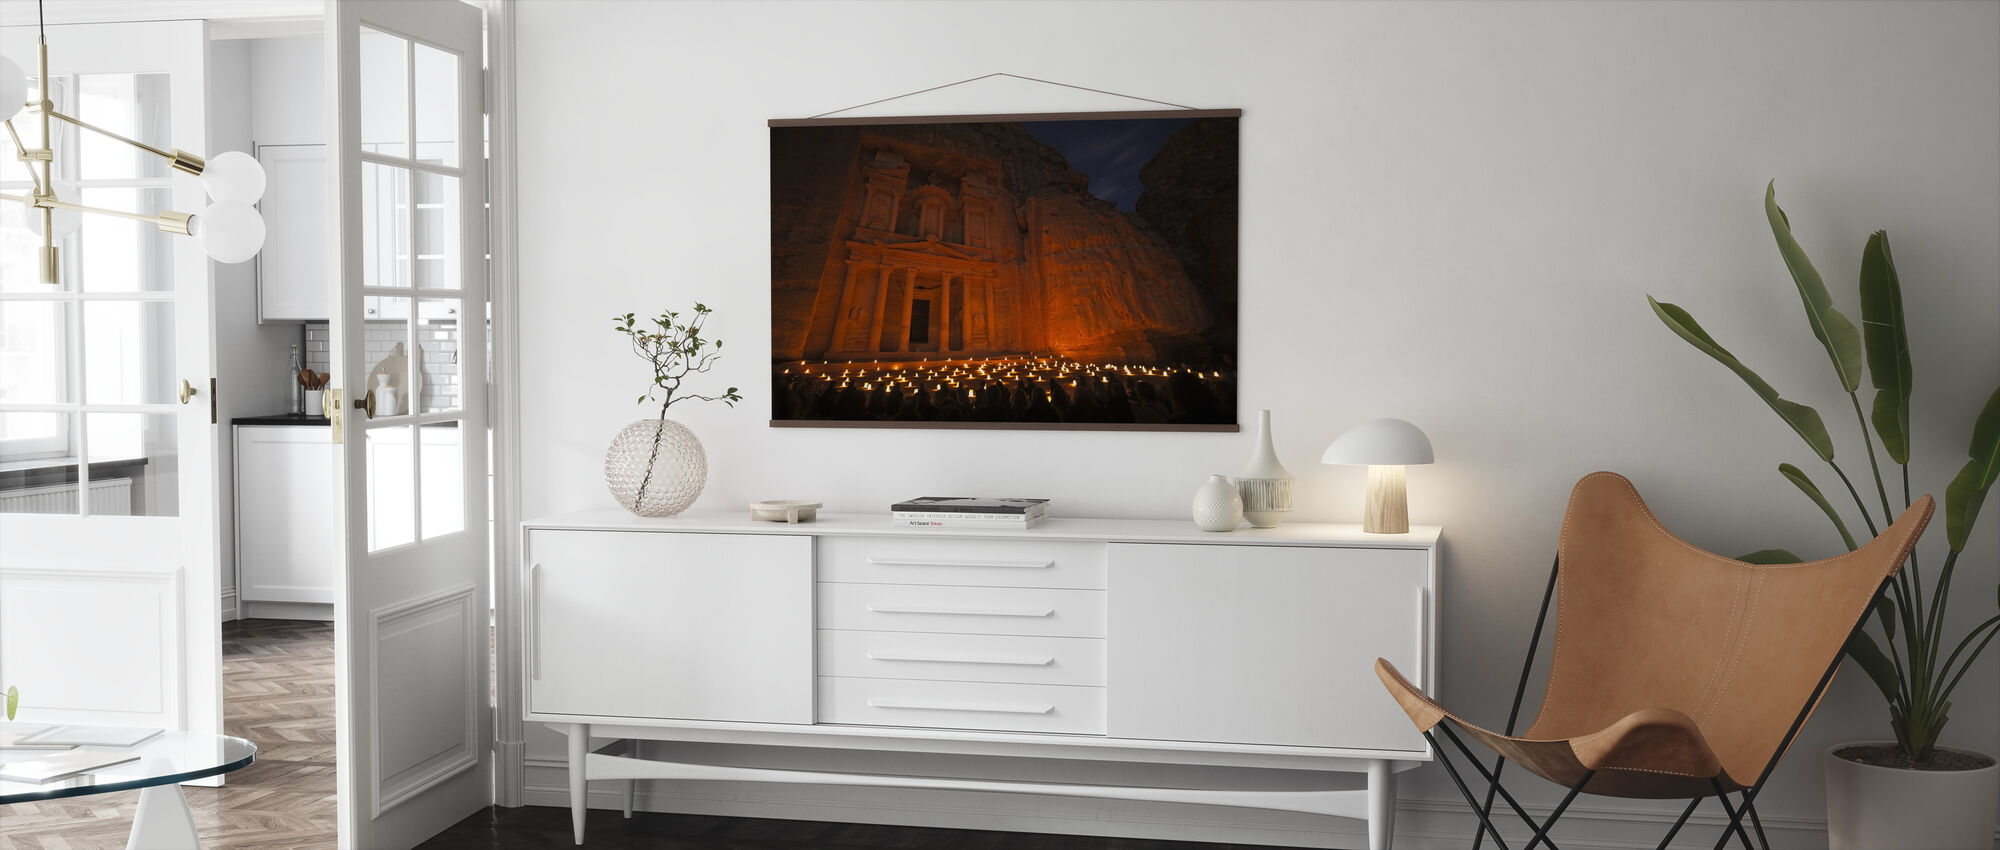 Treasury By Night - Poster - Living Room